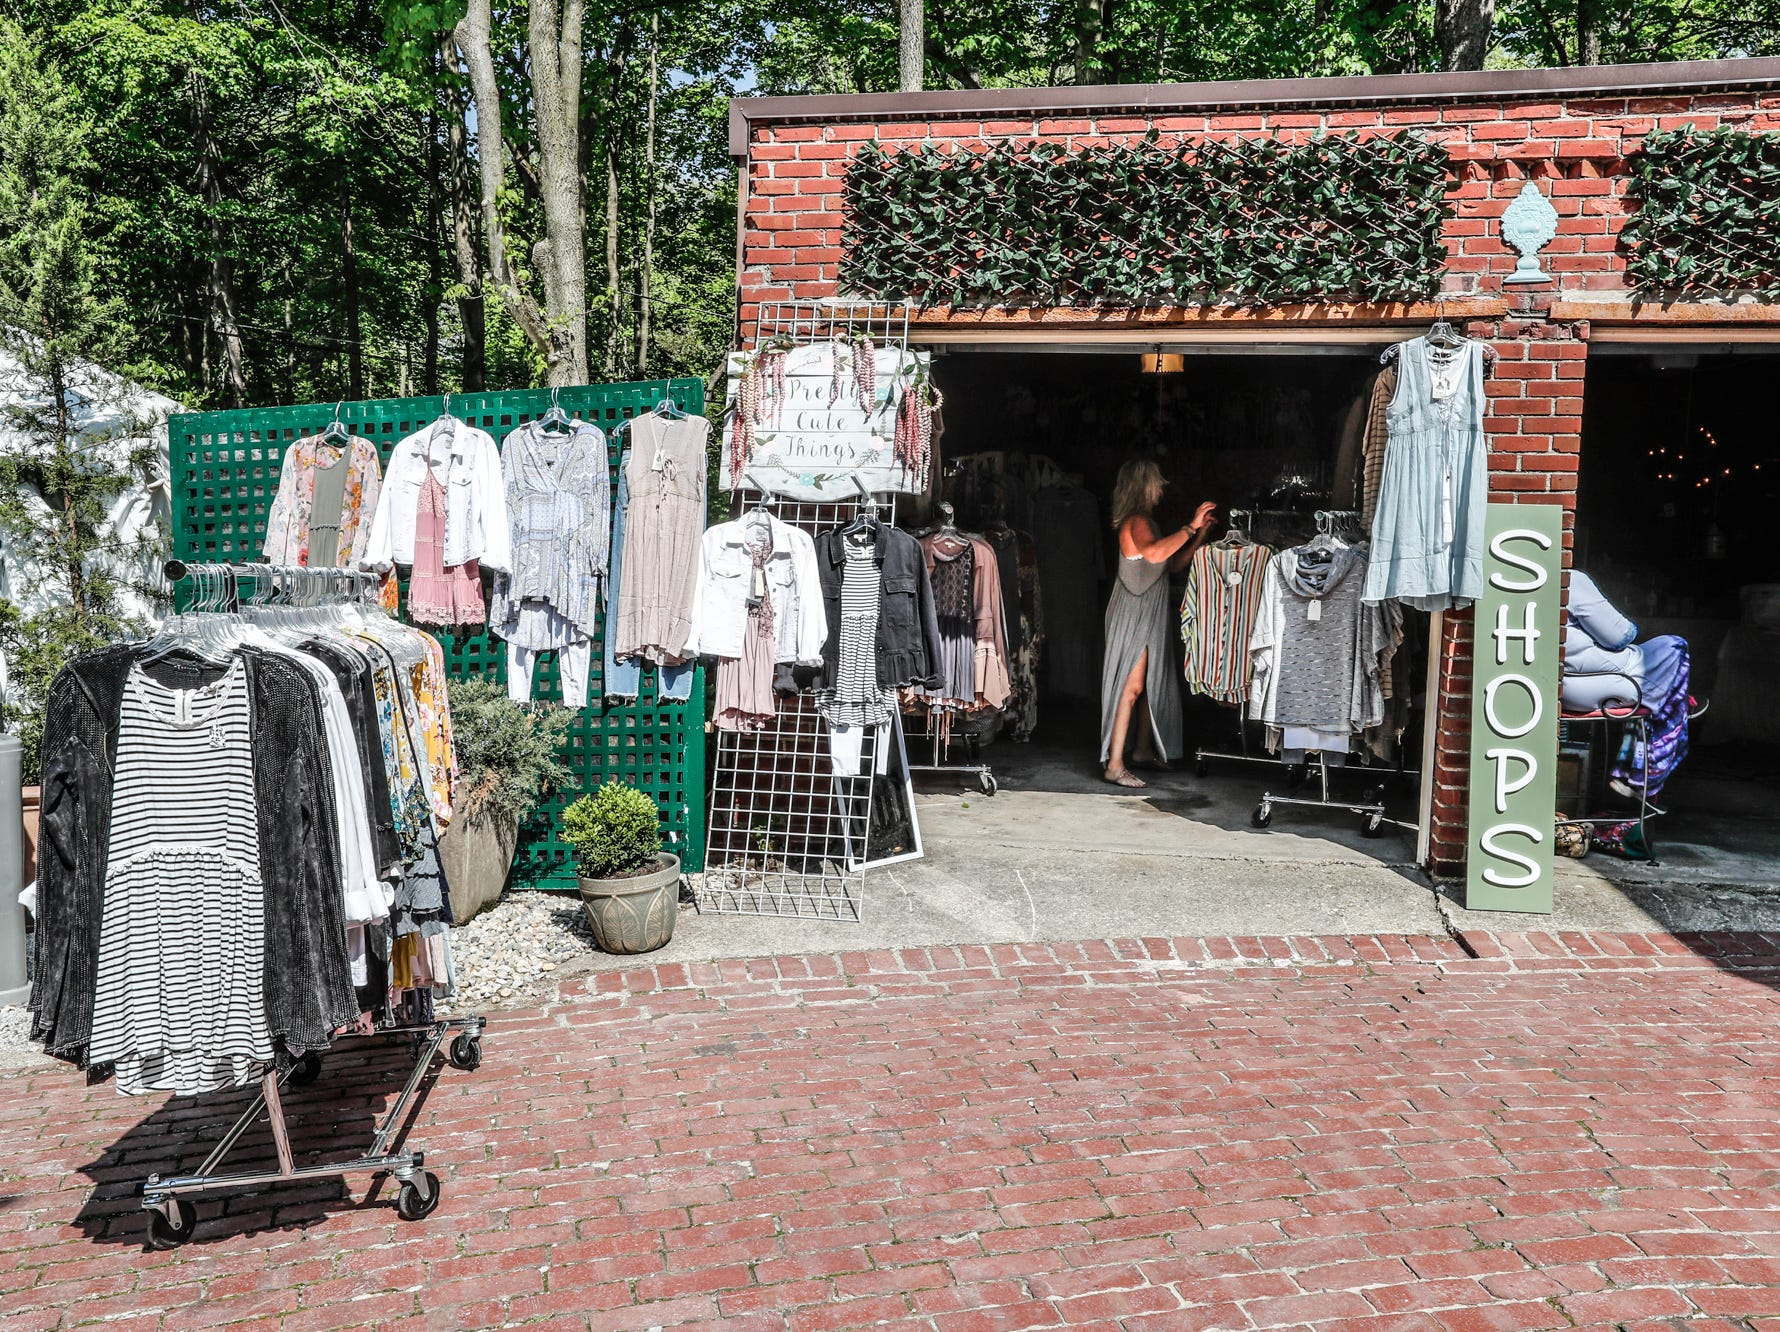 The Pretty Cute Things pop up shop located, in the rear of the 58th annual St. Margaret's Hospital Guild Decorators' Show House and Gardens, located at 4160 Washington Blvd., Indianapolis, on Wednesday, May 8, 2019.